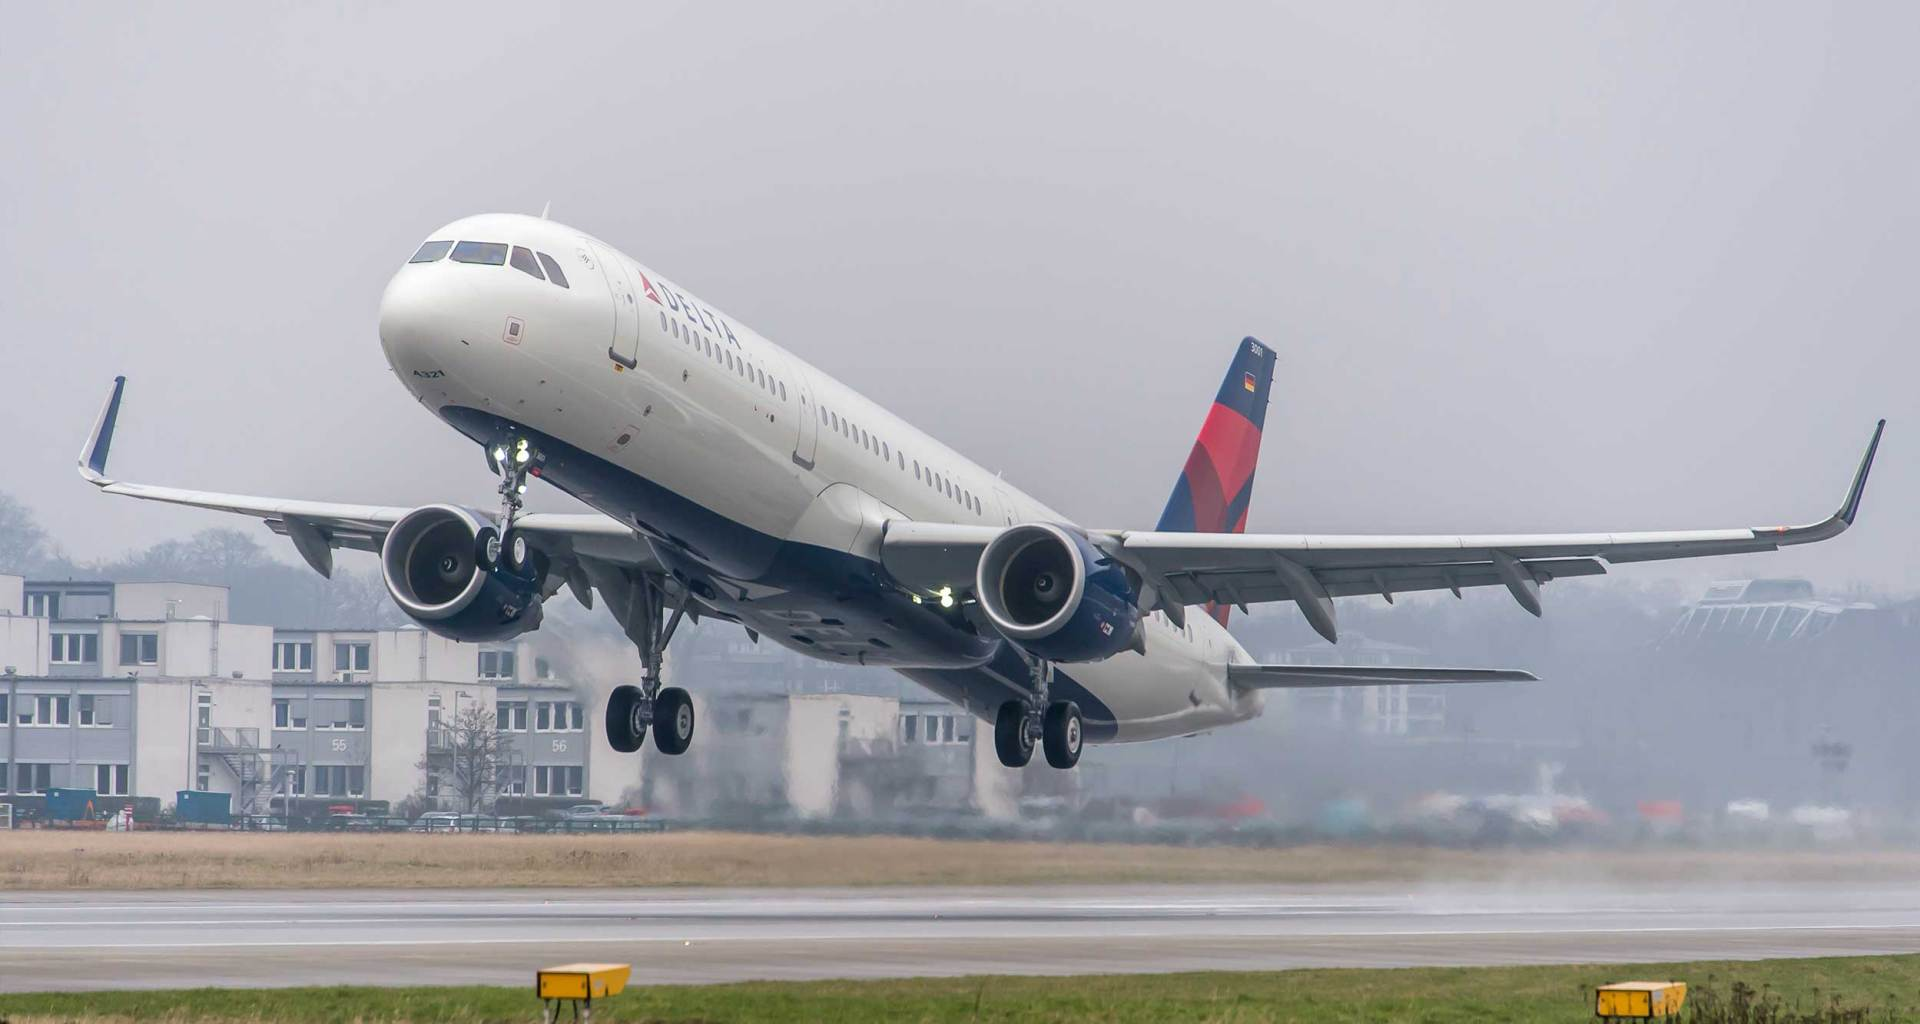 Delta Air Lines Airbus A321 taking off from foggy runway.